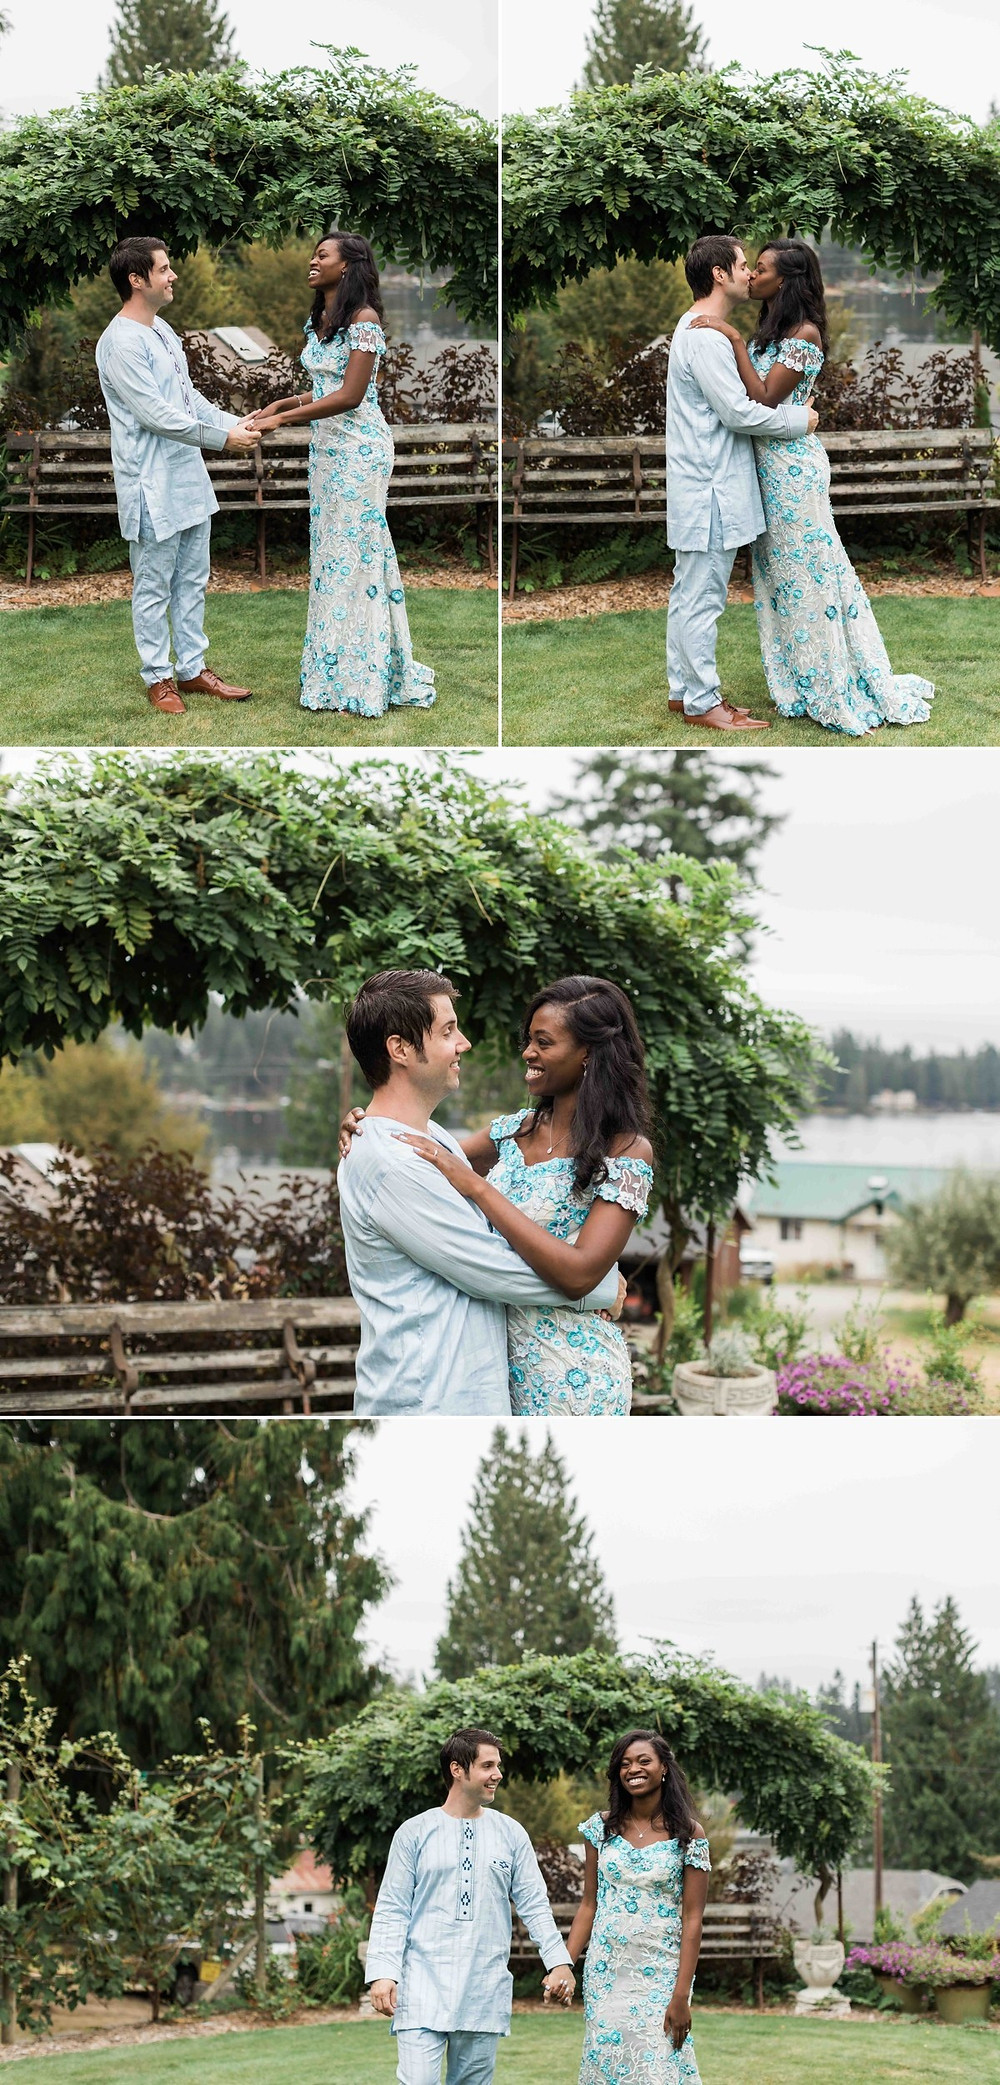 Photos of a bride and groom outdoors after their wedding at Green Gates at Flowing Lake, a wedding venue in Snohomish near Seattle, WA. | My Snohomish Wedding | Snohomish Wedding Planning